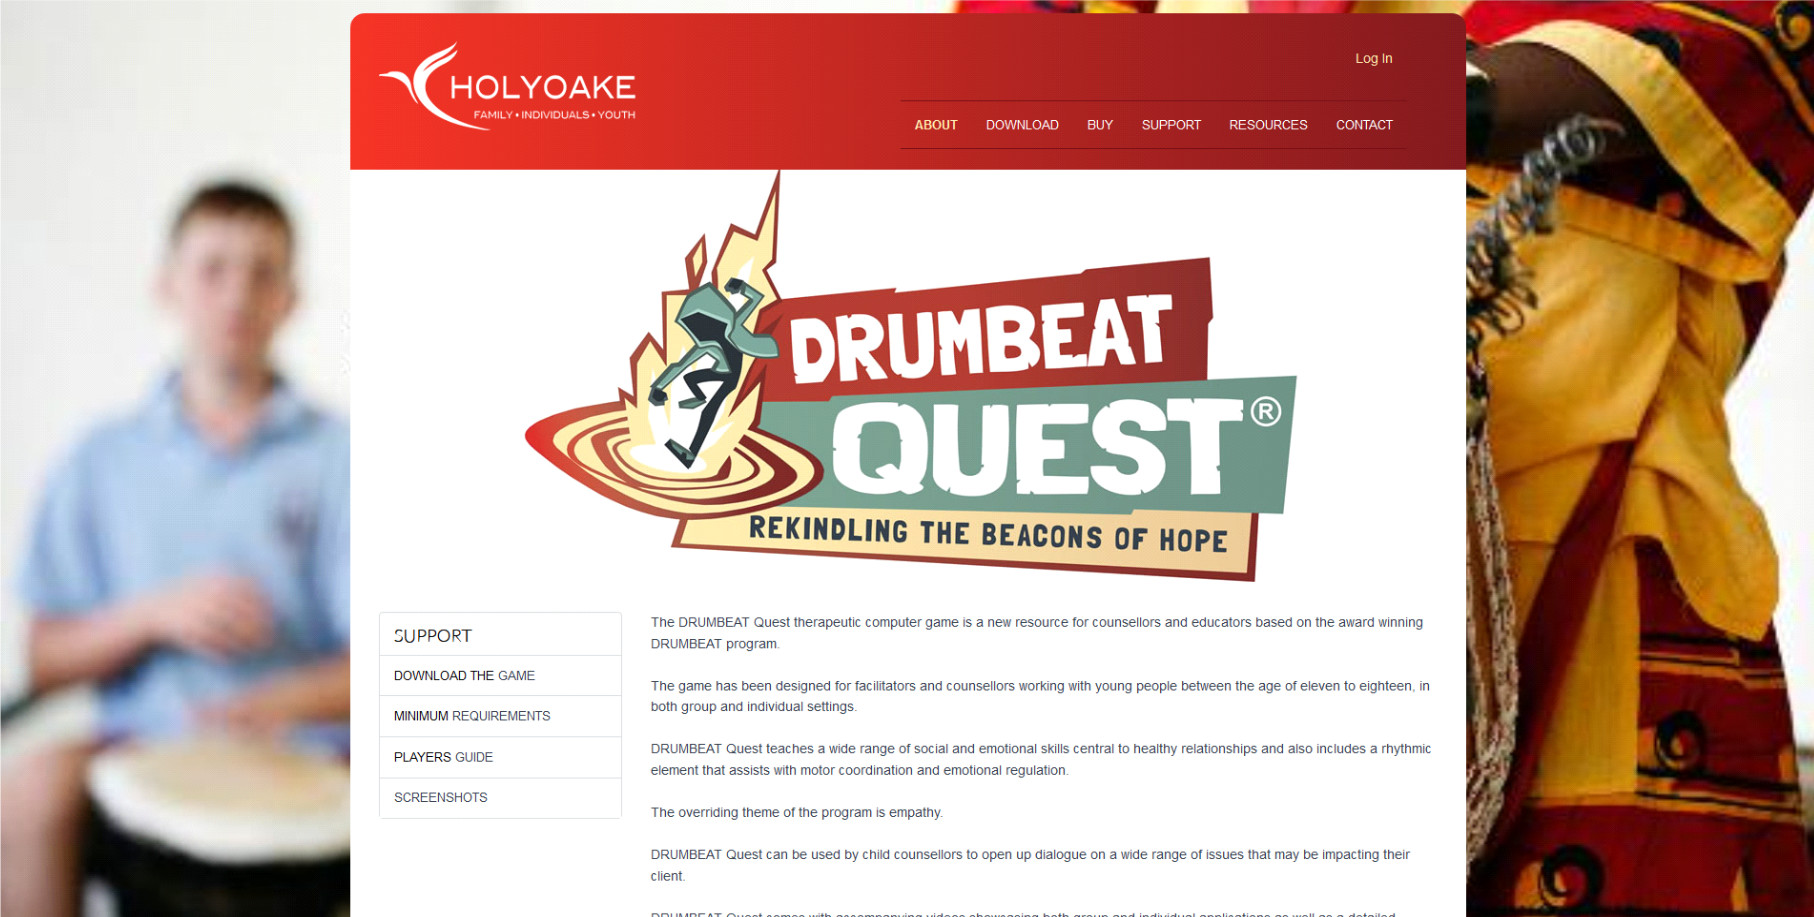 Drumbeat website development for Holyoake in Perth